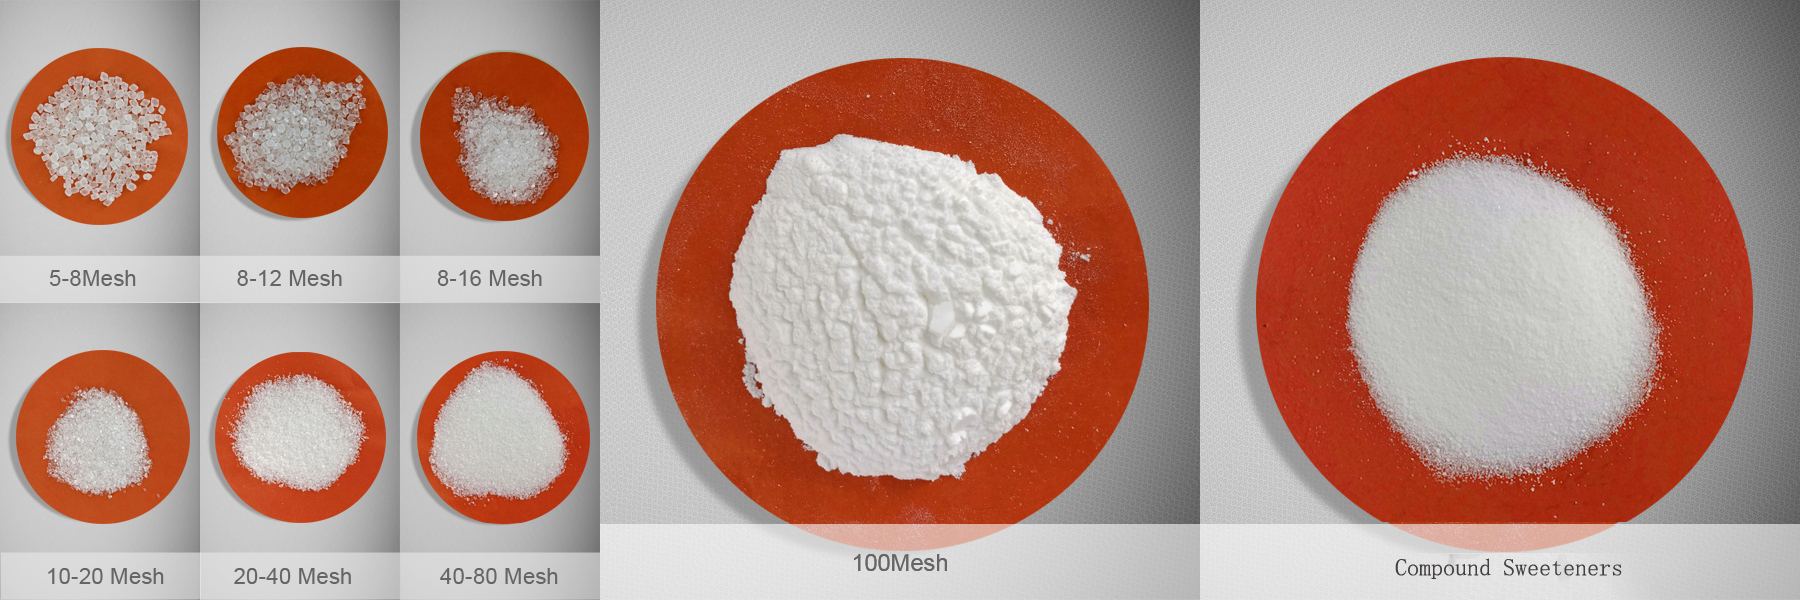 Foodchem Sodium Saccharin Factory